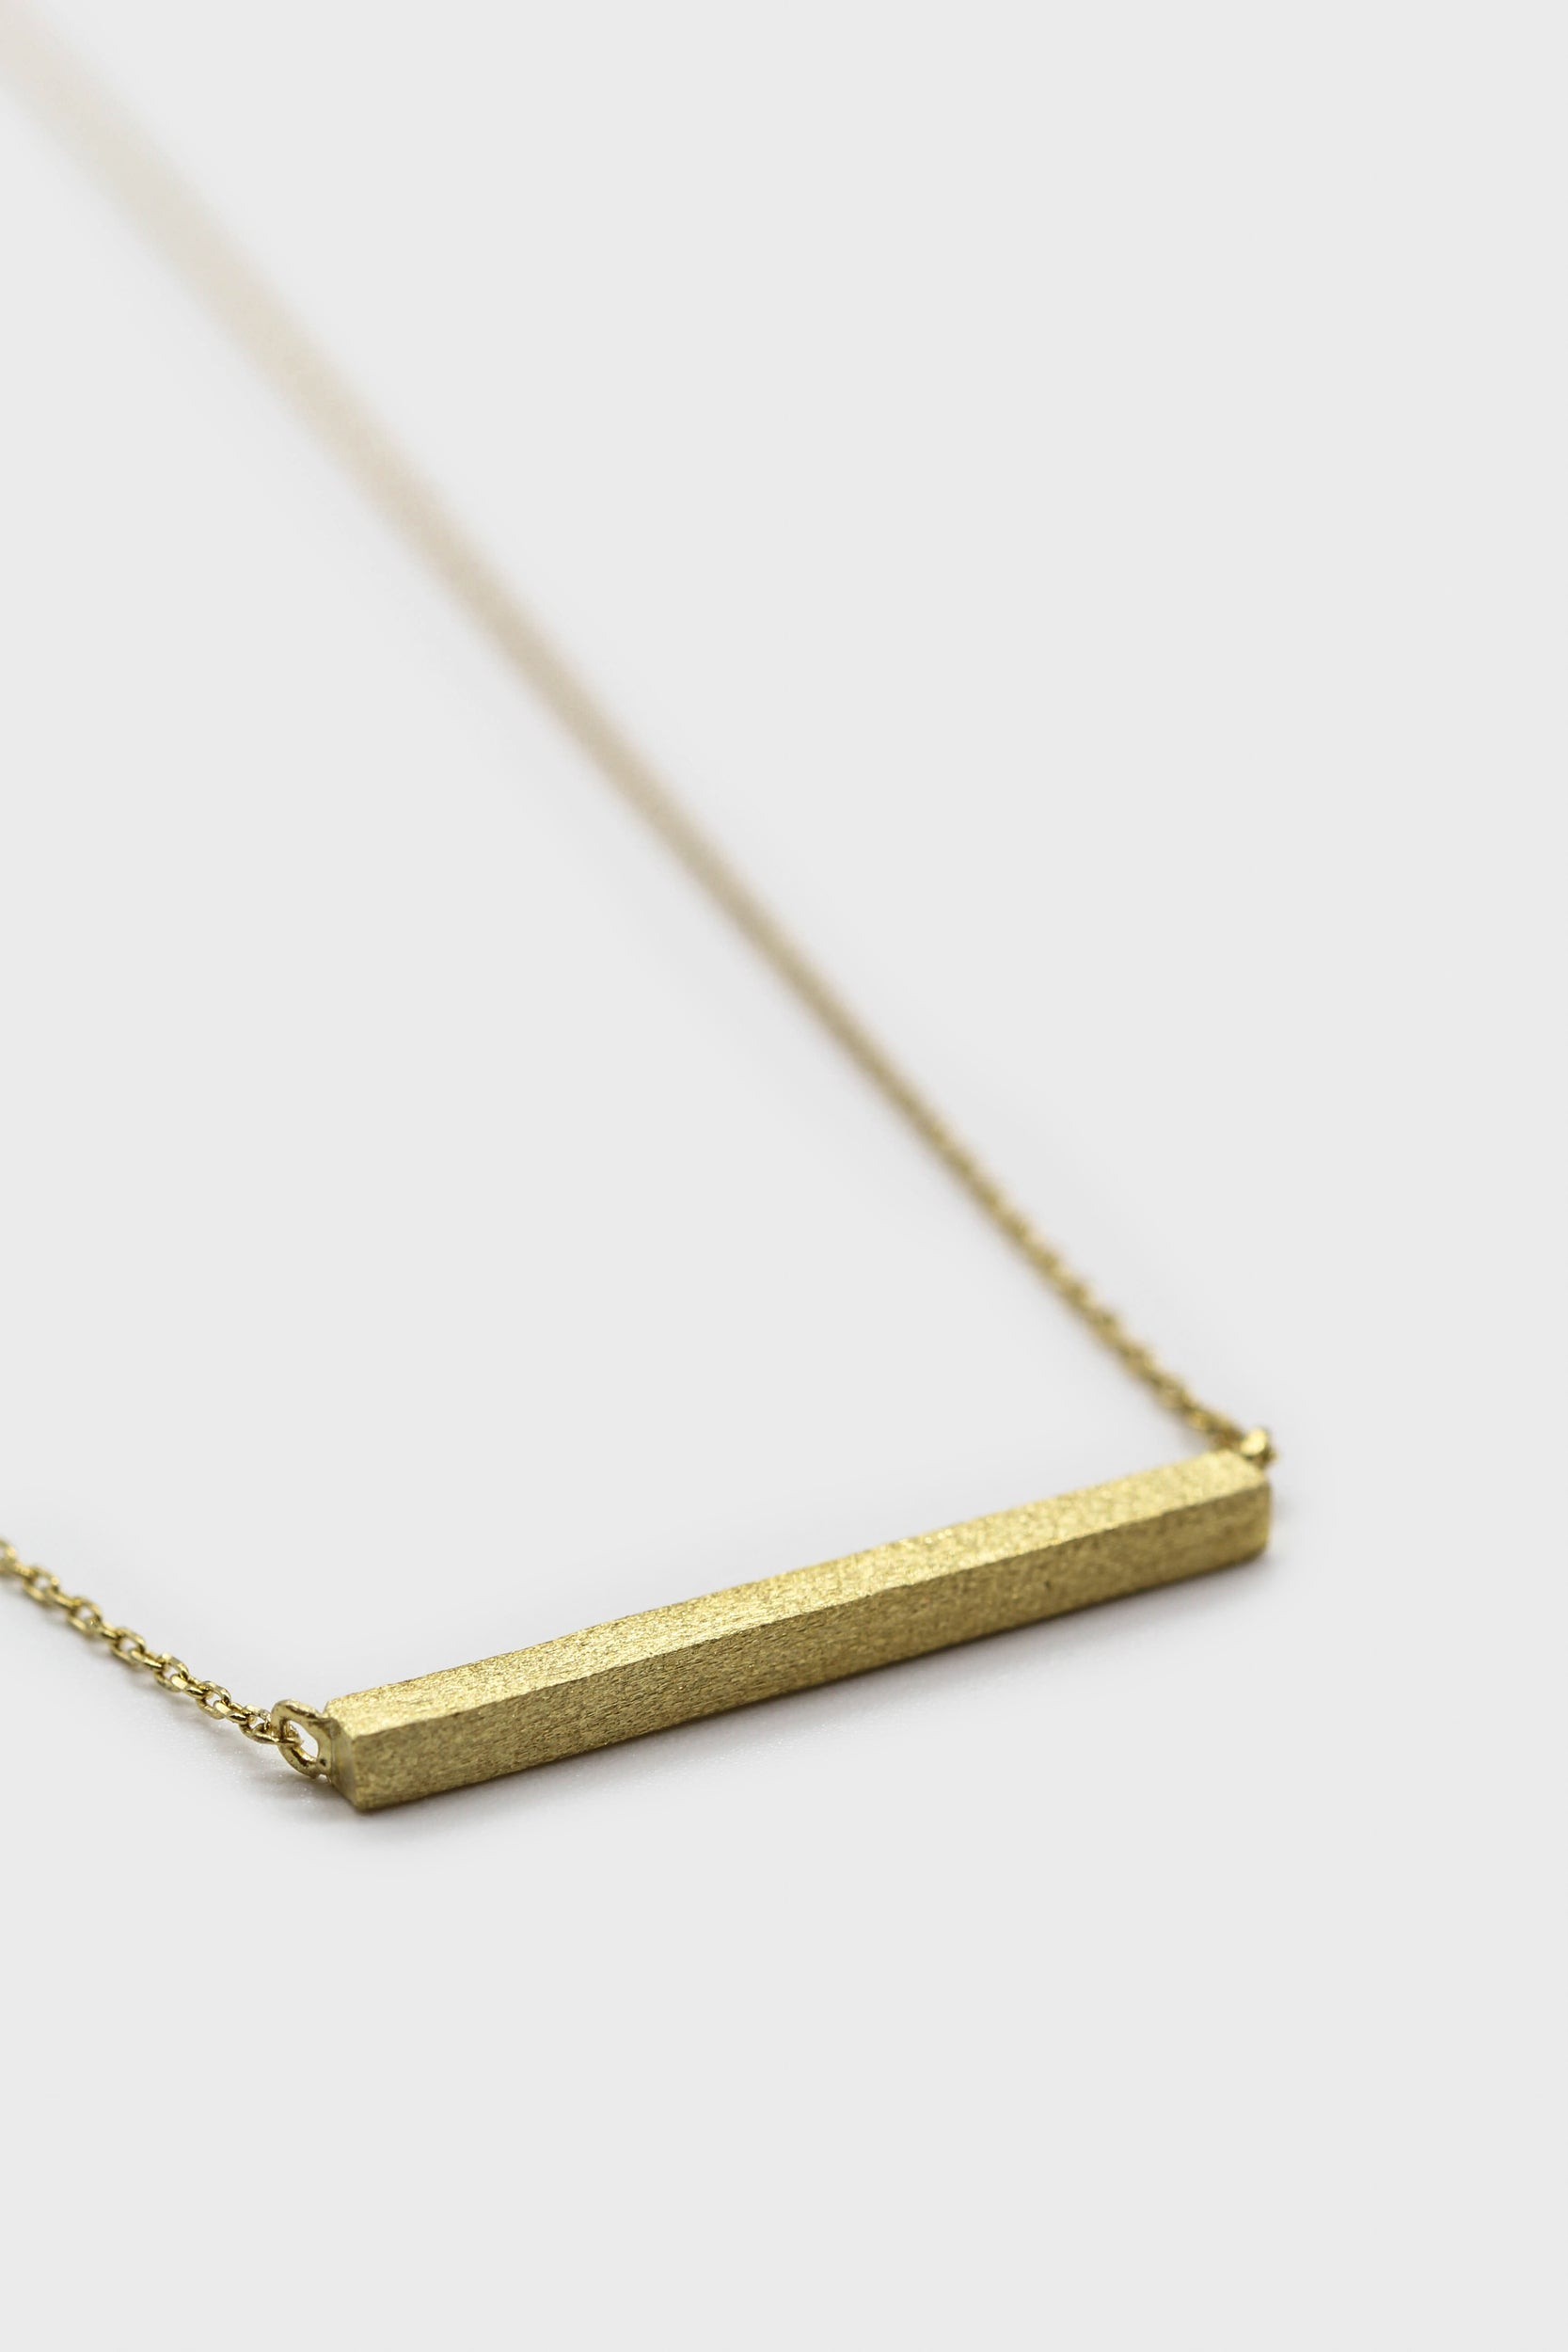 Charm necklace - Gold bar1